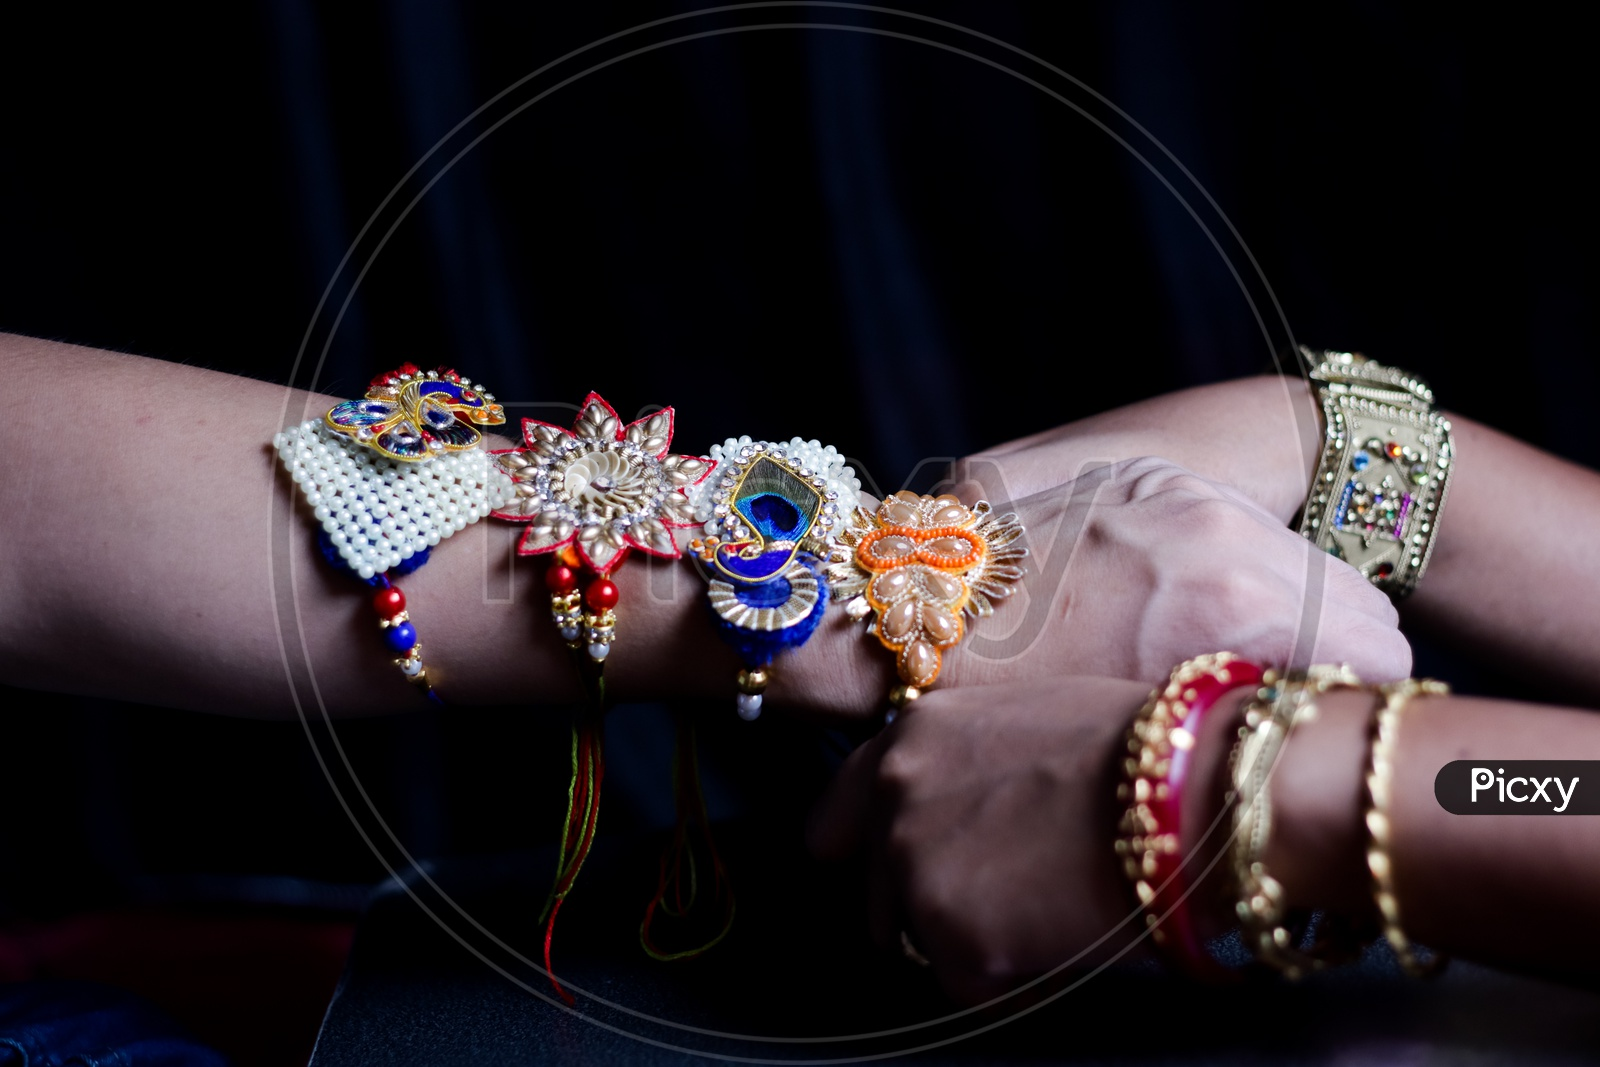 Sister Tying Rakhi To a brother Hand  During Traditional  Hindu Festival Raksha Bandhan  Over a Dark Black Background